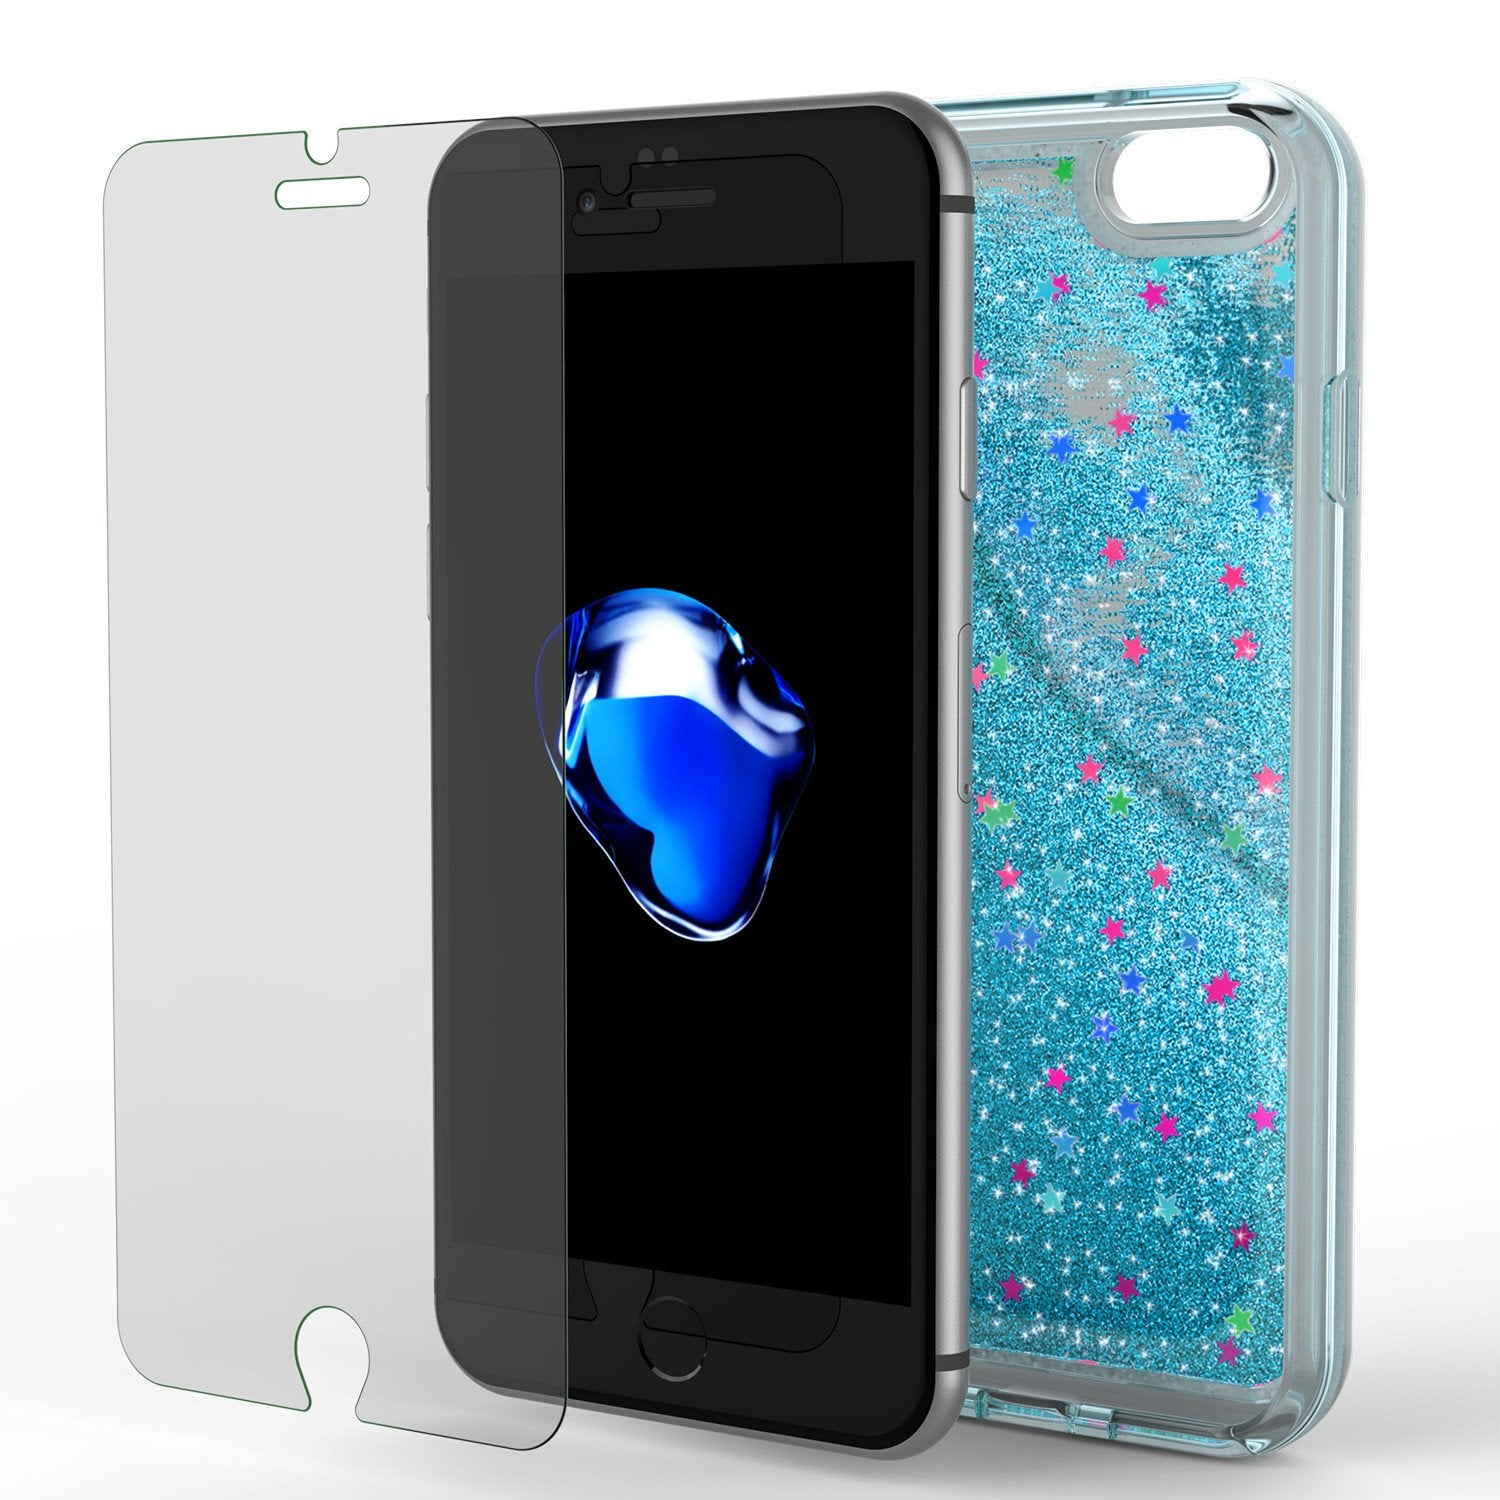 iPhone 7 Case, Punkcase [Liquid Teal Series] Protective Dual Layer Floating Glitter Cover with lots of Bling & Sparkle + 0.3mm Tempered Glass Screen Protector for Apple iPhone 7s